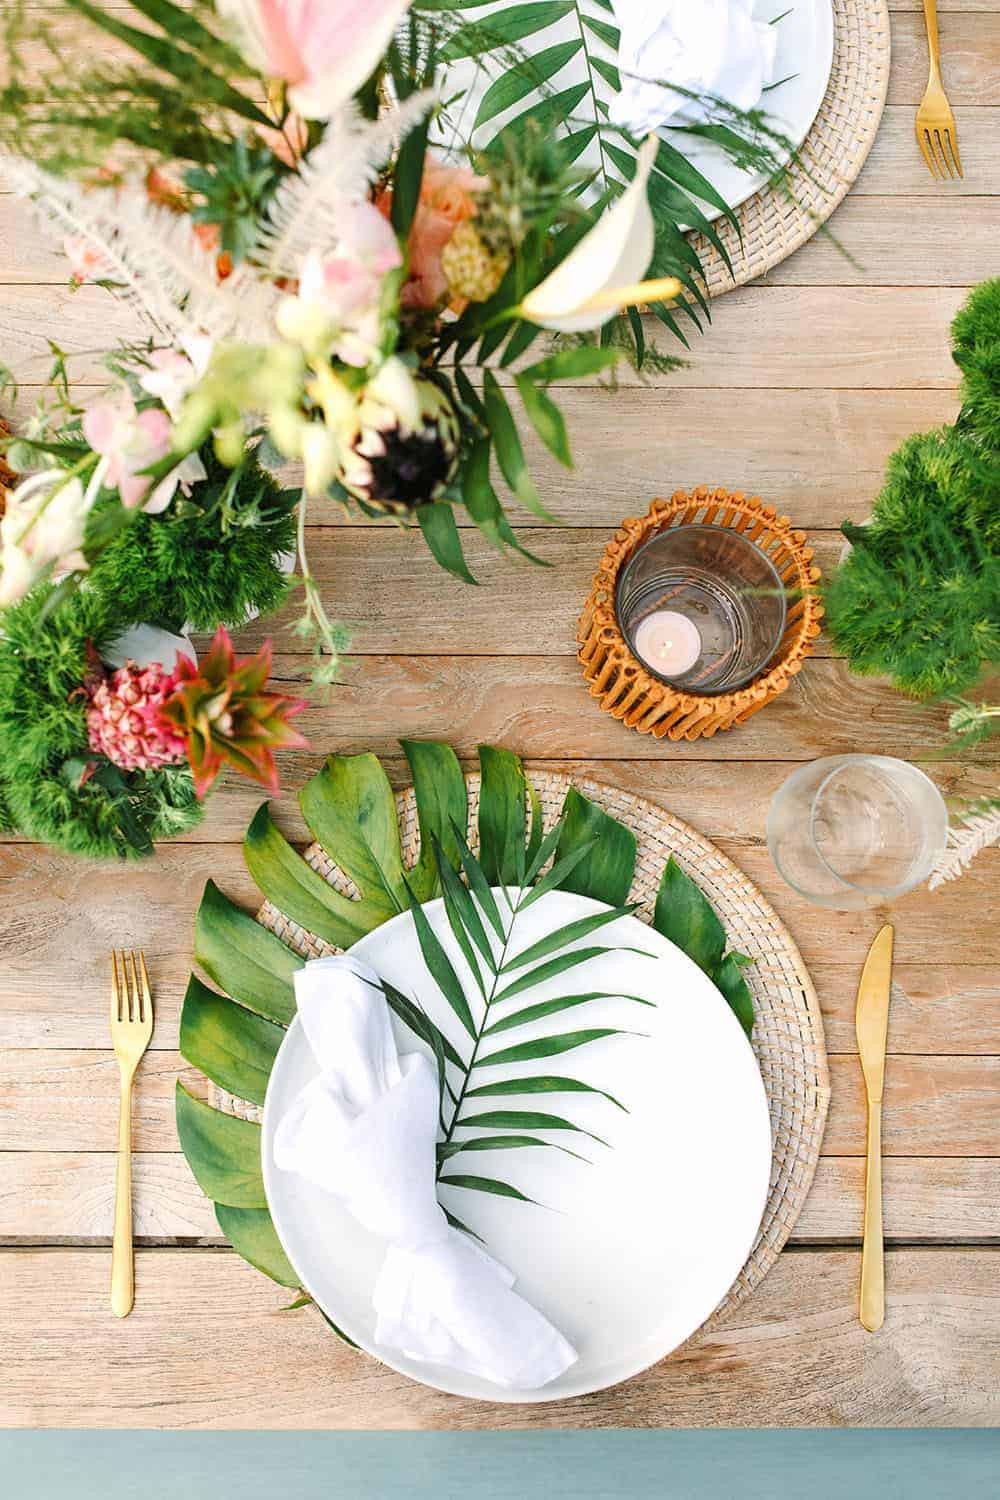 Tropical table setting with giant palm leaves, white plate and woven charger.